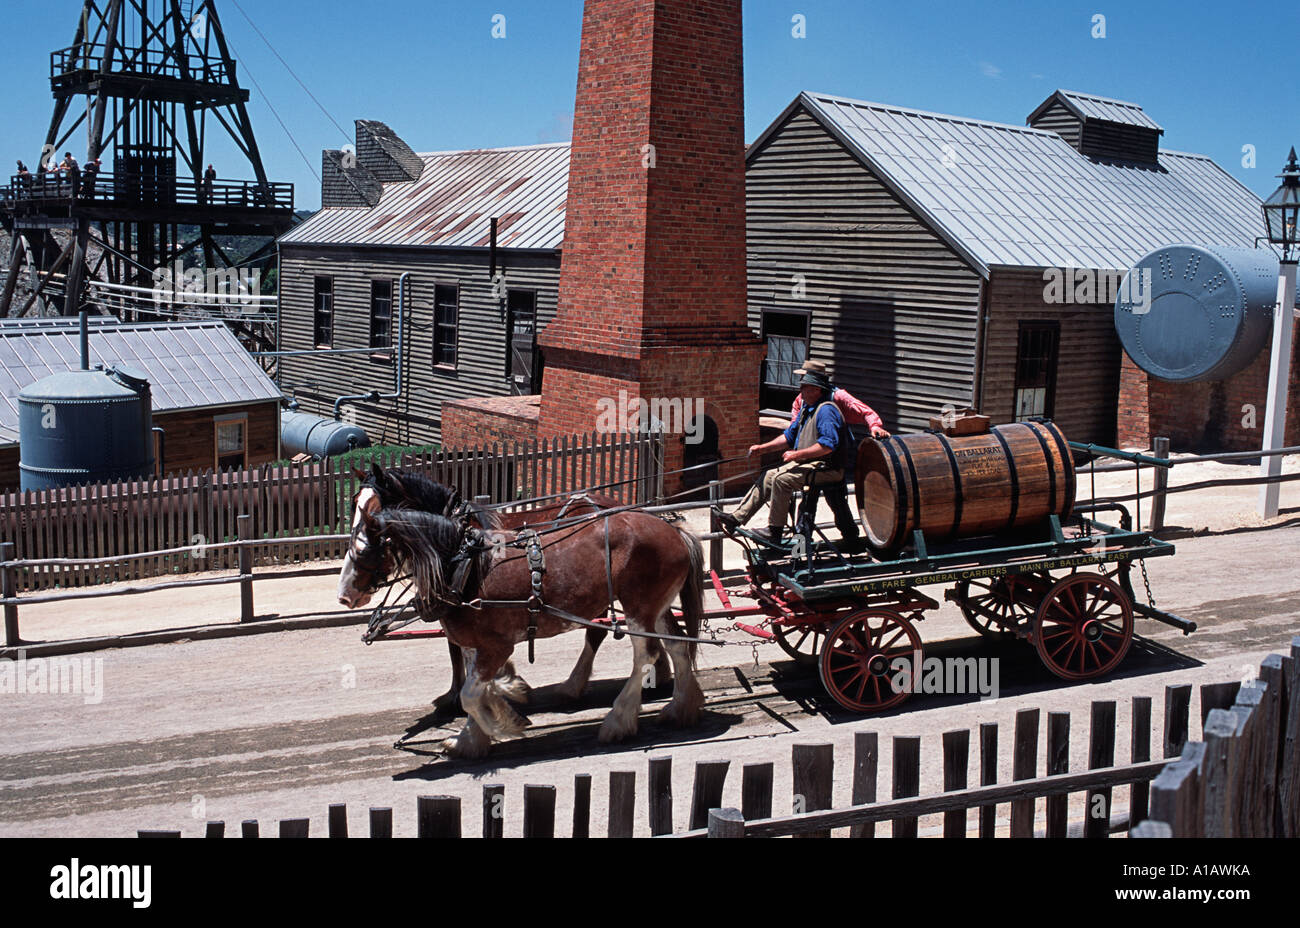 Horse drawn carriage on the street of Ballarat A theme park attraction with an outback colonial flavour Ballarat Australia - Stock Image